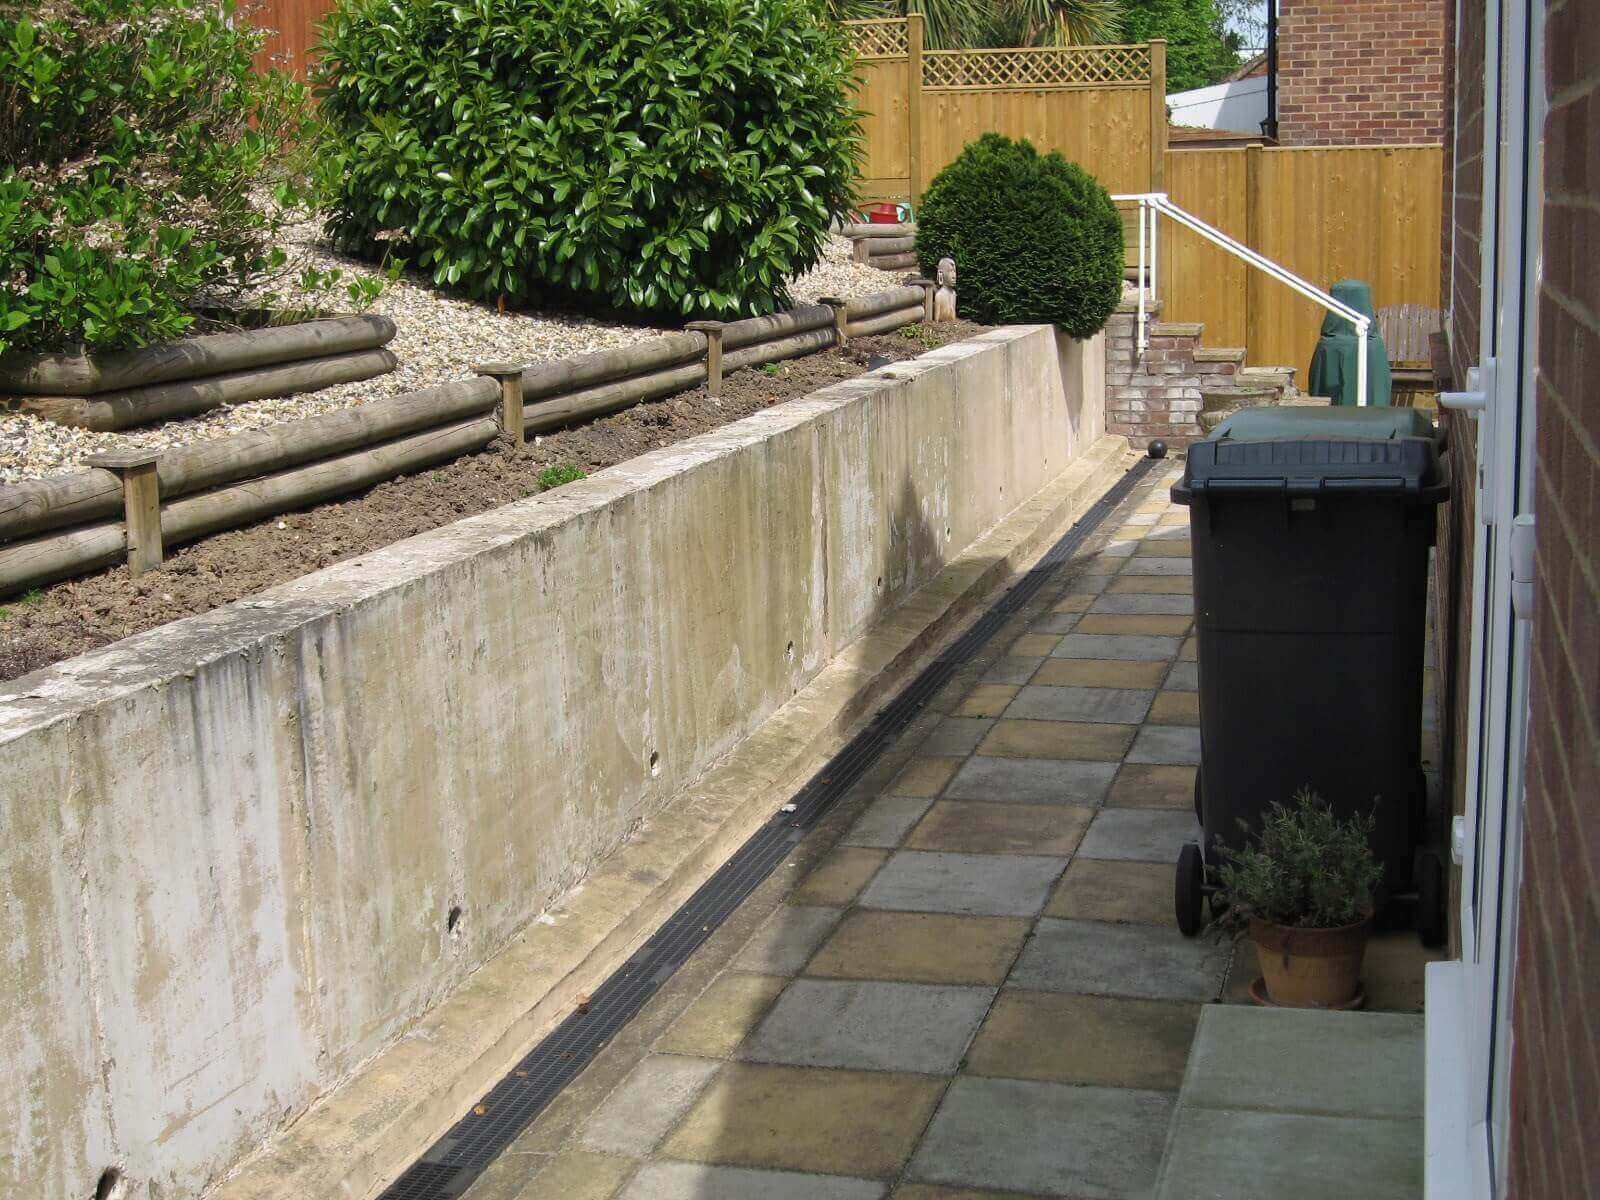 Garden wall before Jakwall installation